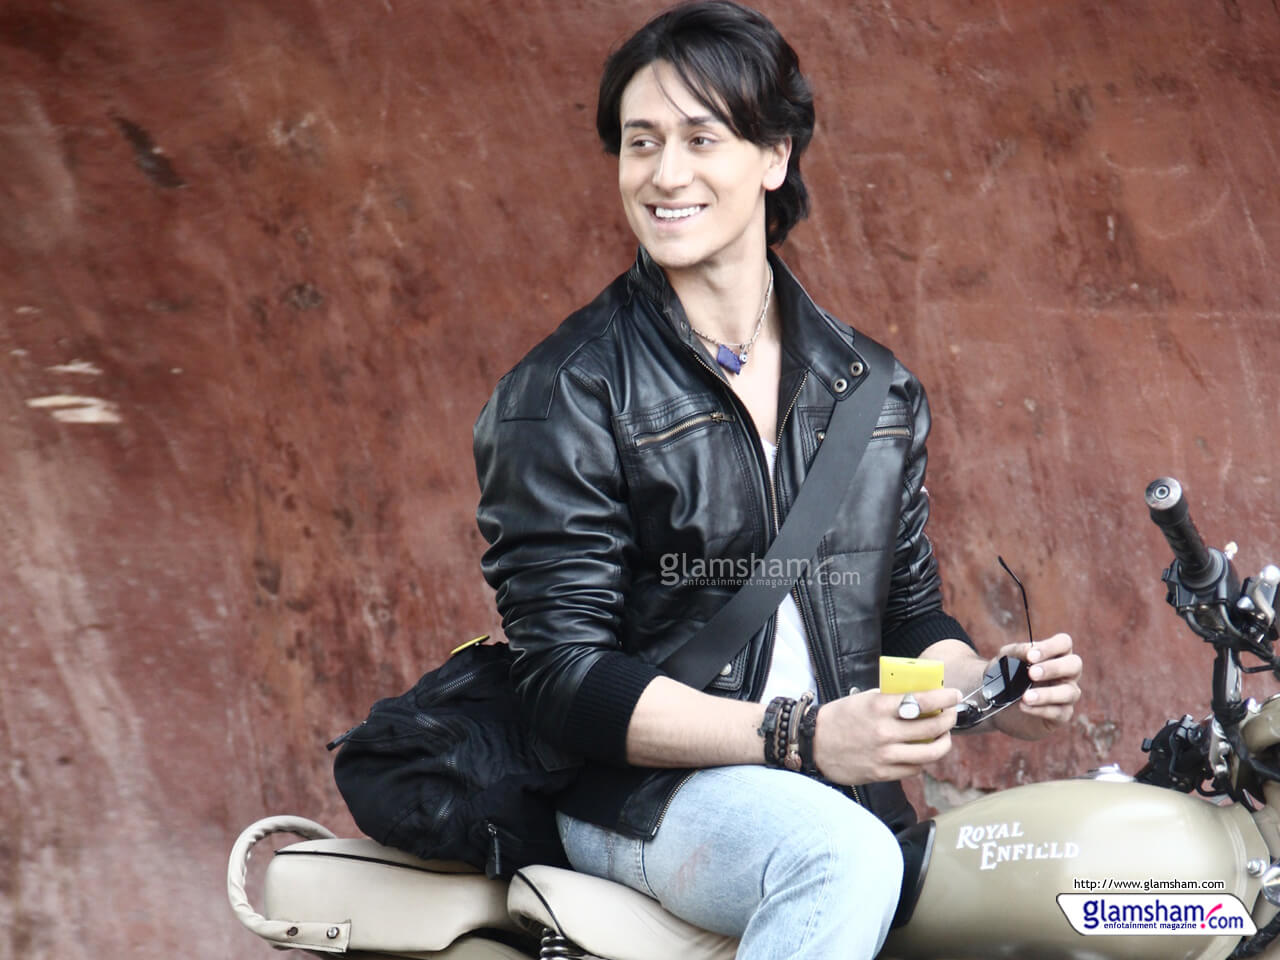 Tiger Shroff Age, Photos(image), Song, Movie, Height, Girlfriend, Sister, Date Of Birth, Net Worth, Biography, Education, Awards, Instagram, Twitter, Facebook, Wiki, Imdb, Youtube (6)